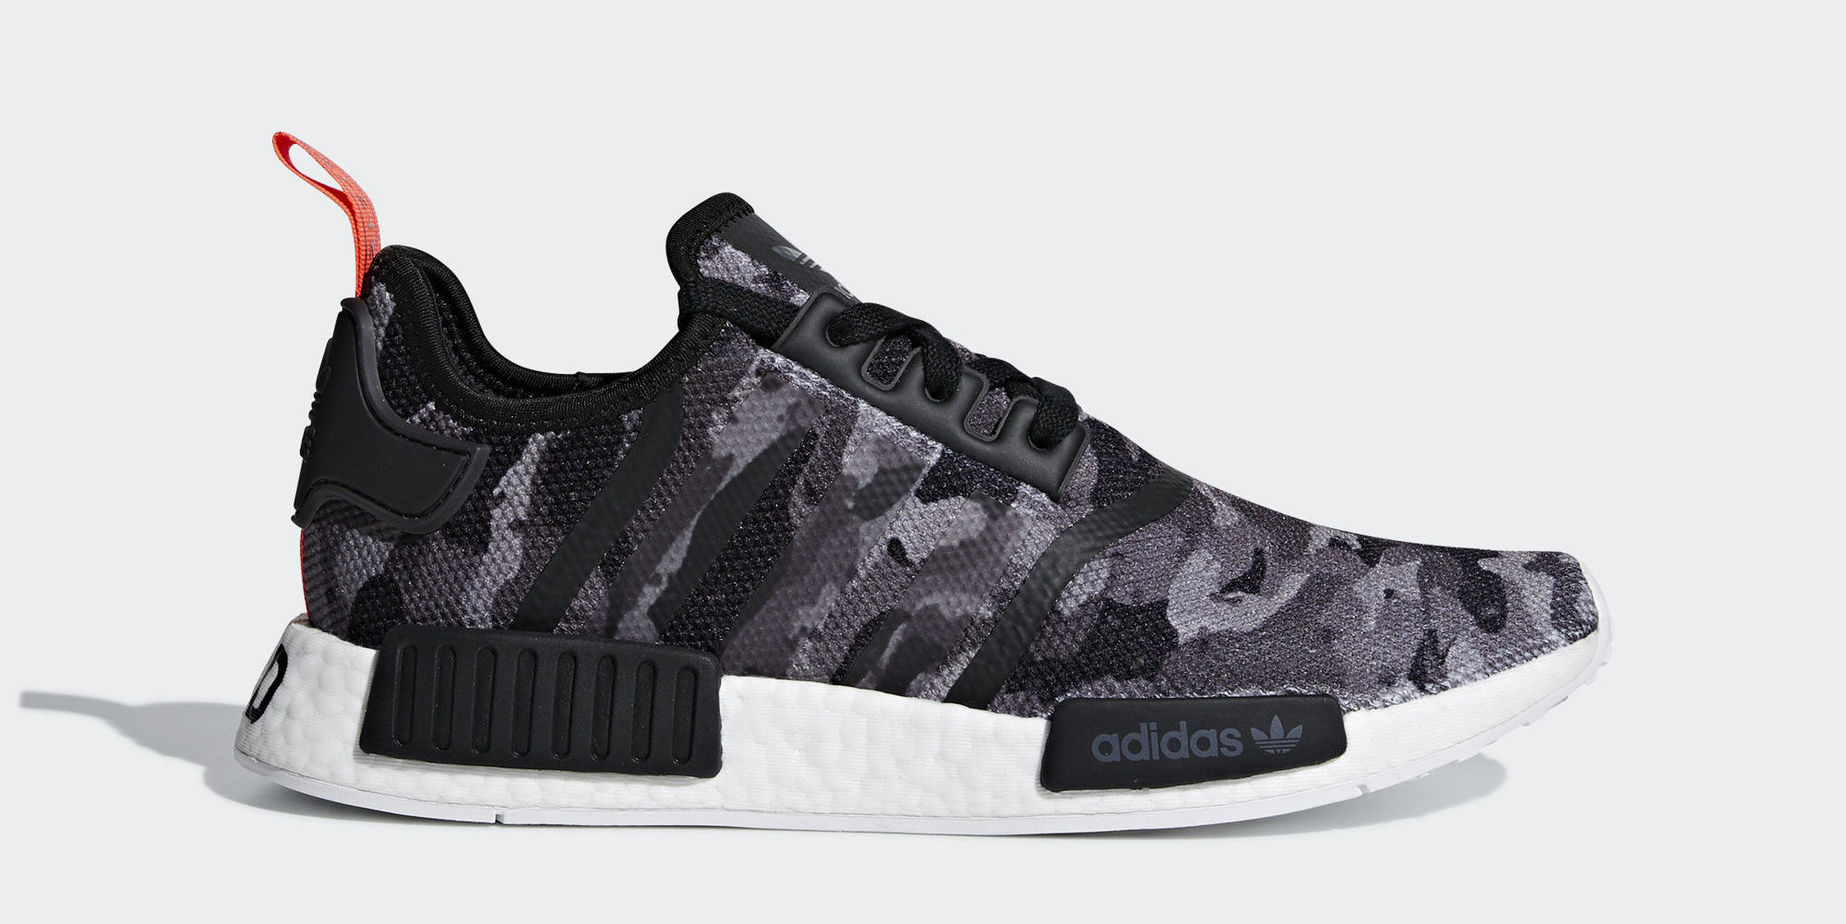 outlet store eebd8 f7c90 australia adidas nmd runner womens dark red pink shoes 99f65 ae418  order adidas  nmd r1 printed series grey grey solar red august 11 2018 f3ec1 7121e